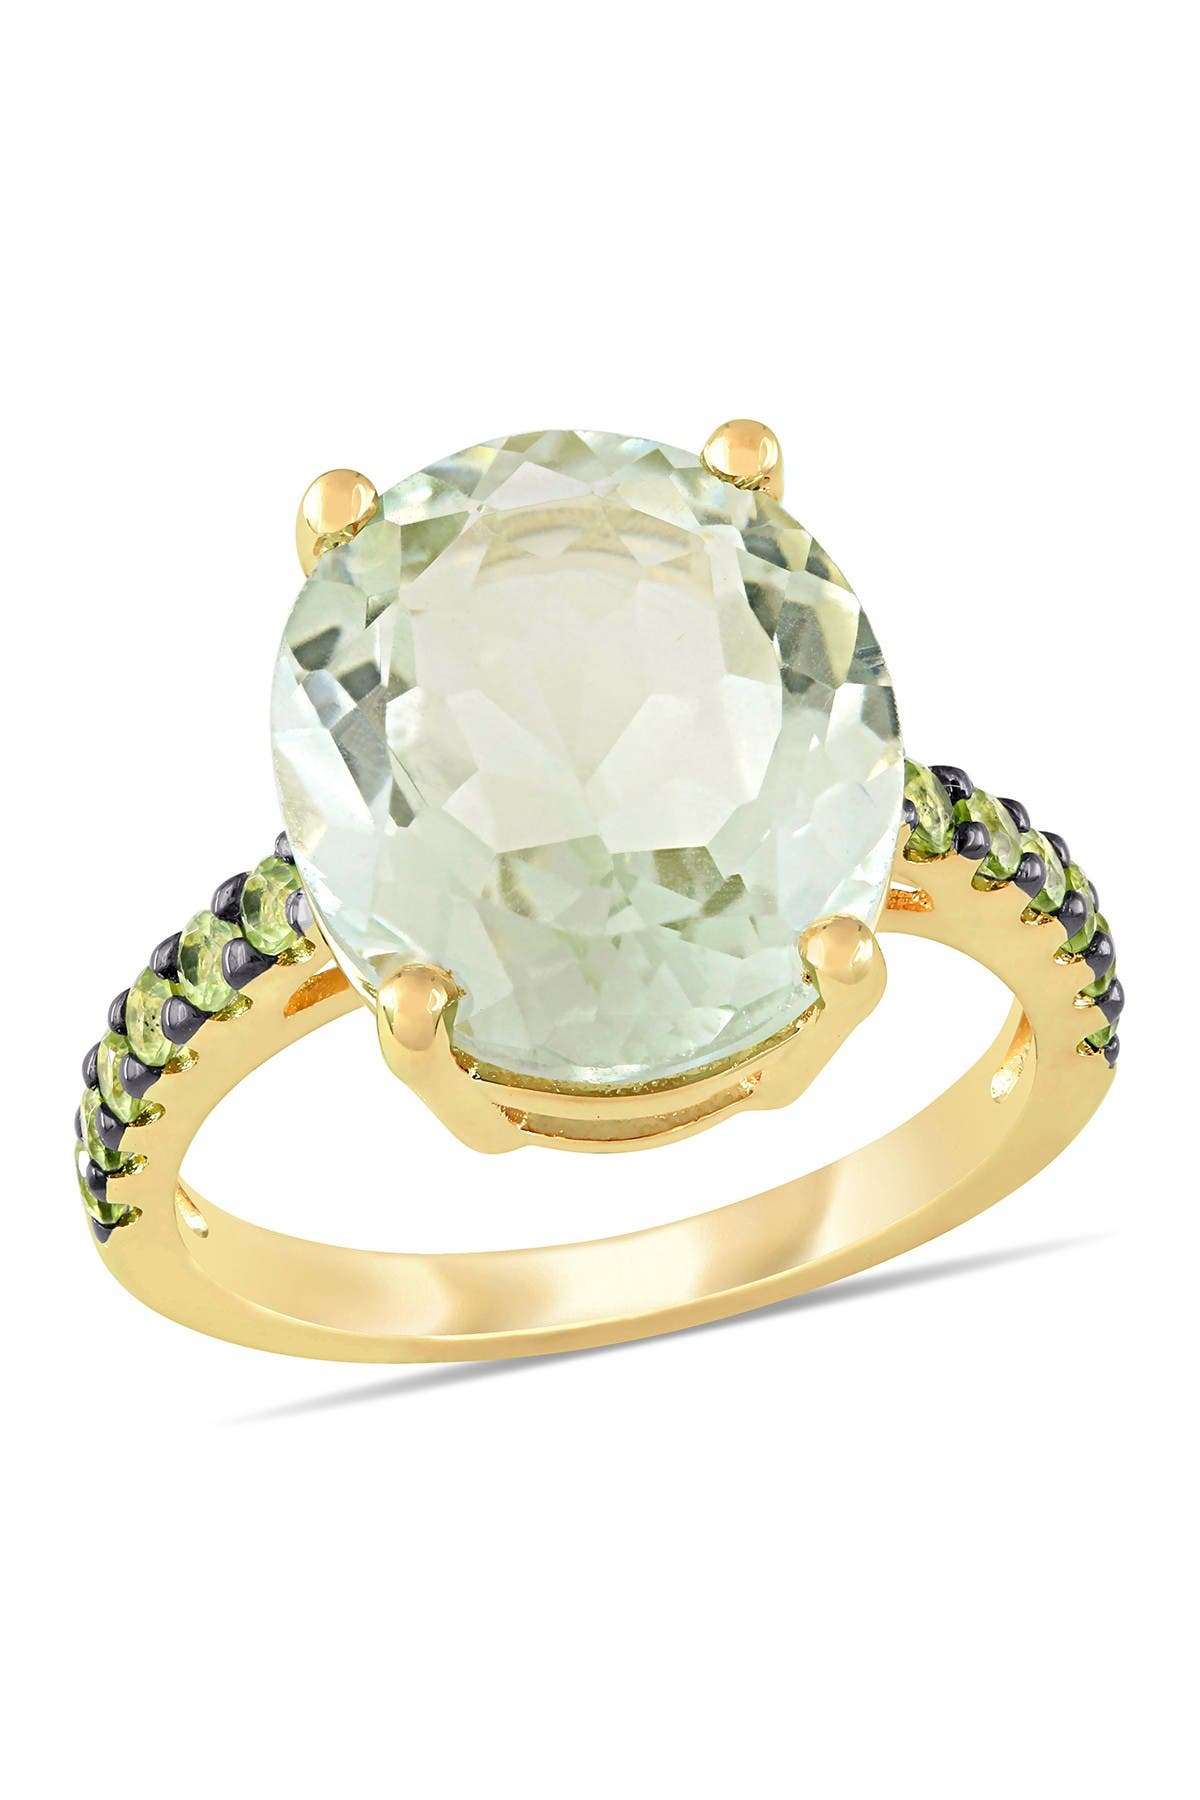 Image of Delmar Yellow Gold Plated Sterling Silver Green Amethyst Pave Peridot Cocktail Ring